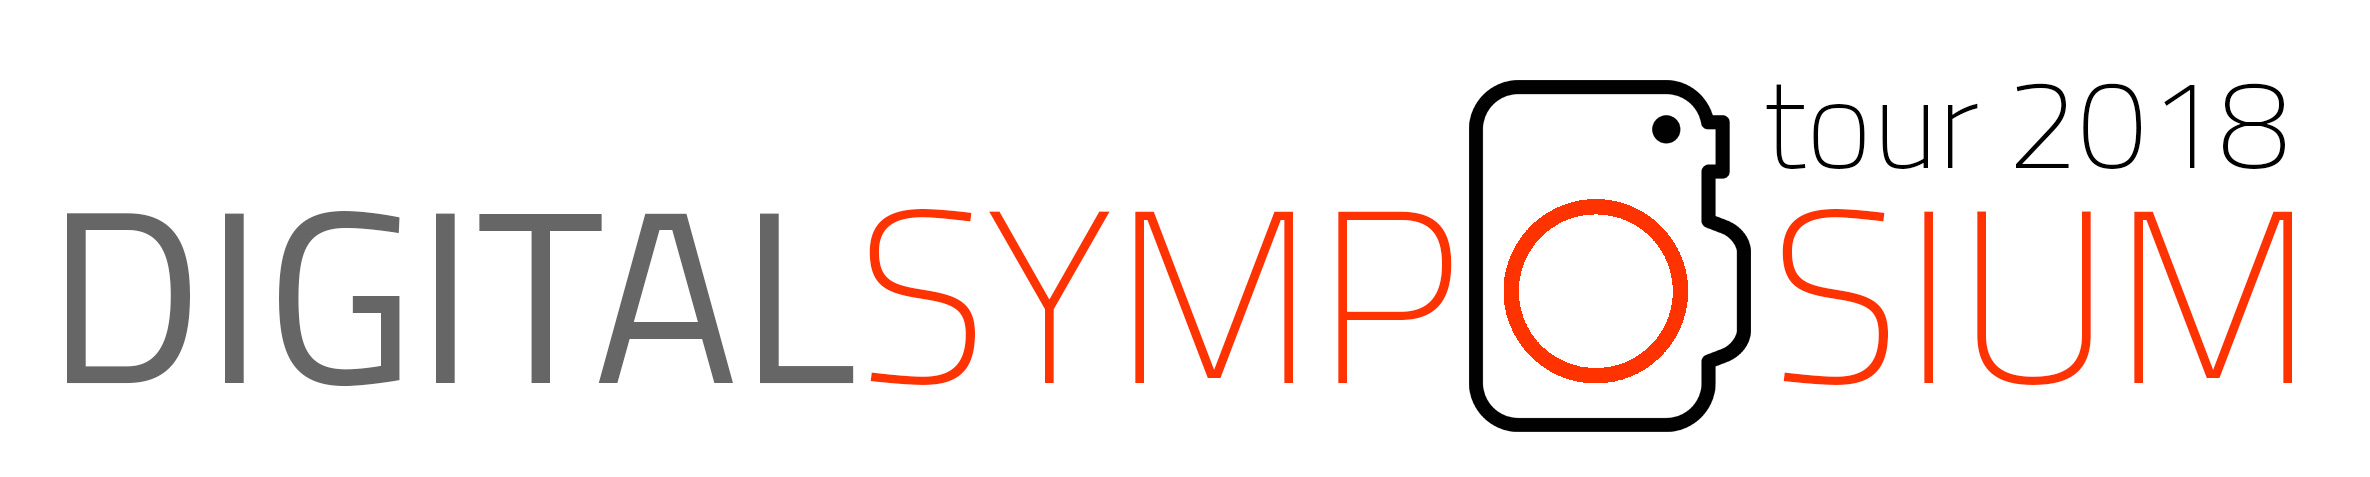 DigitalSymphosium Tour 2018